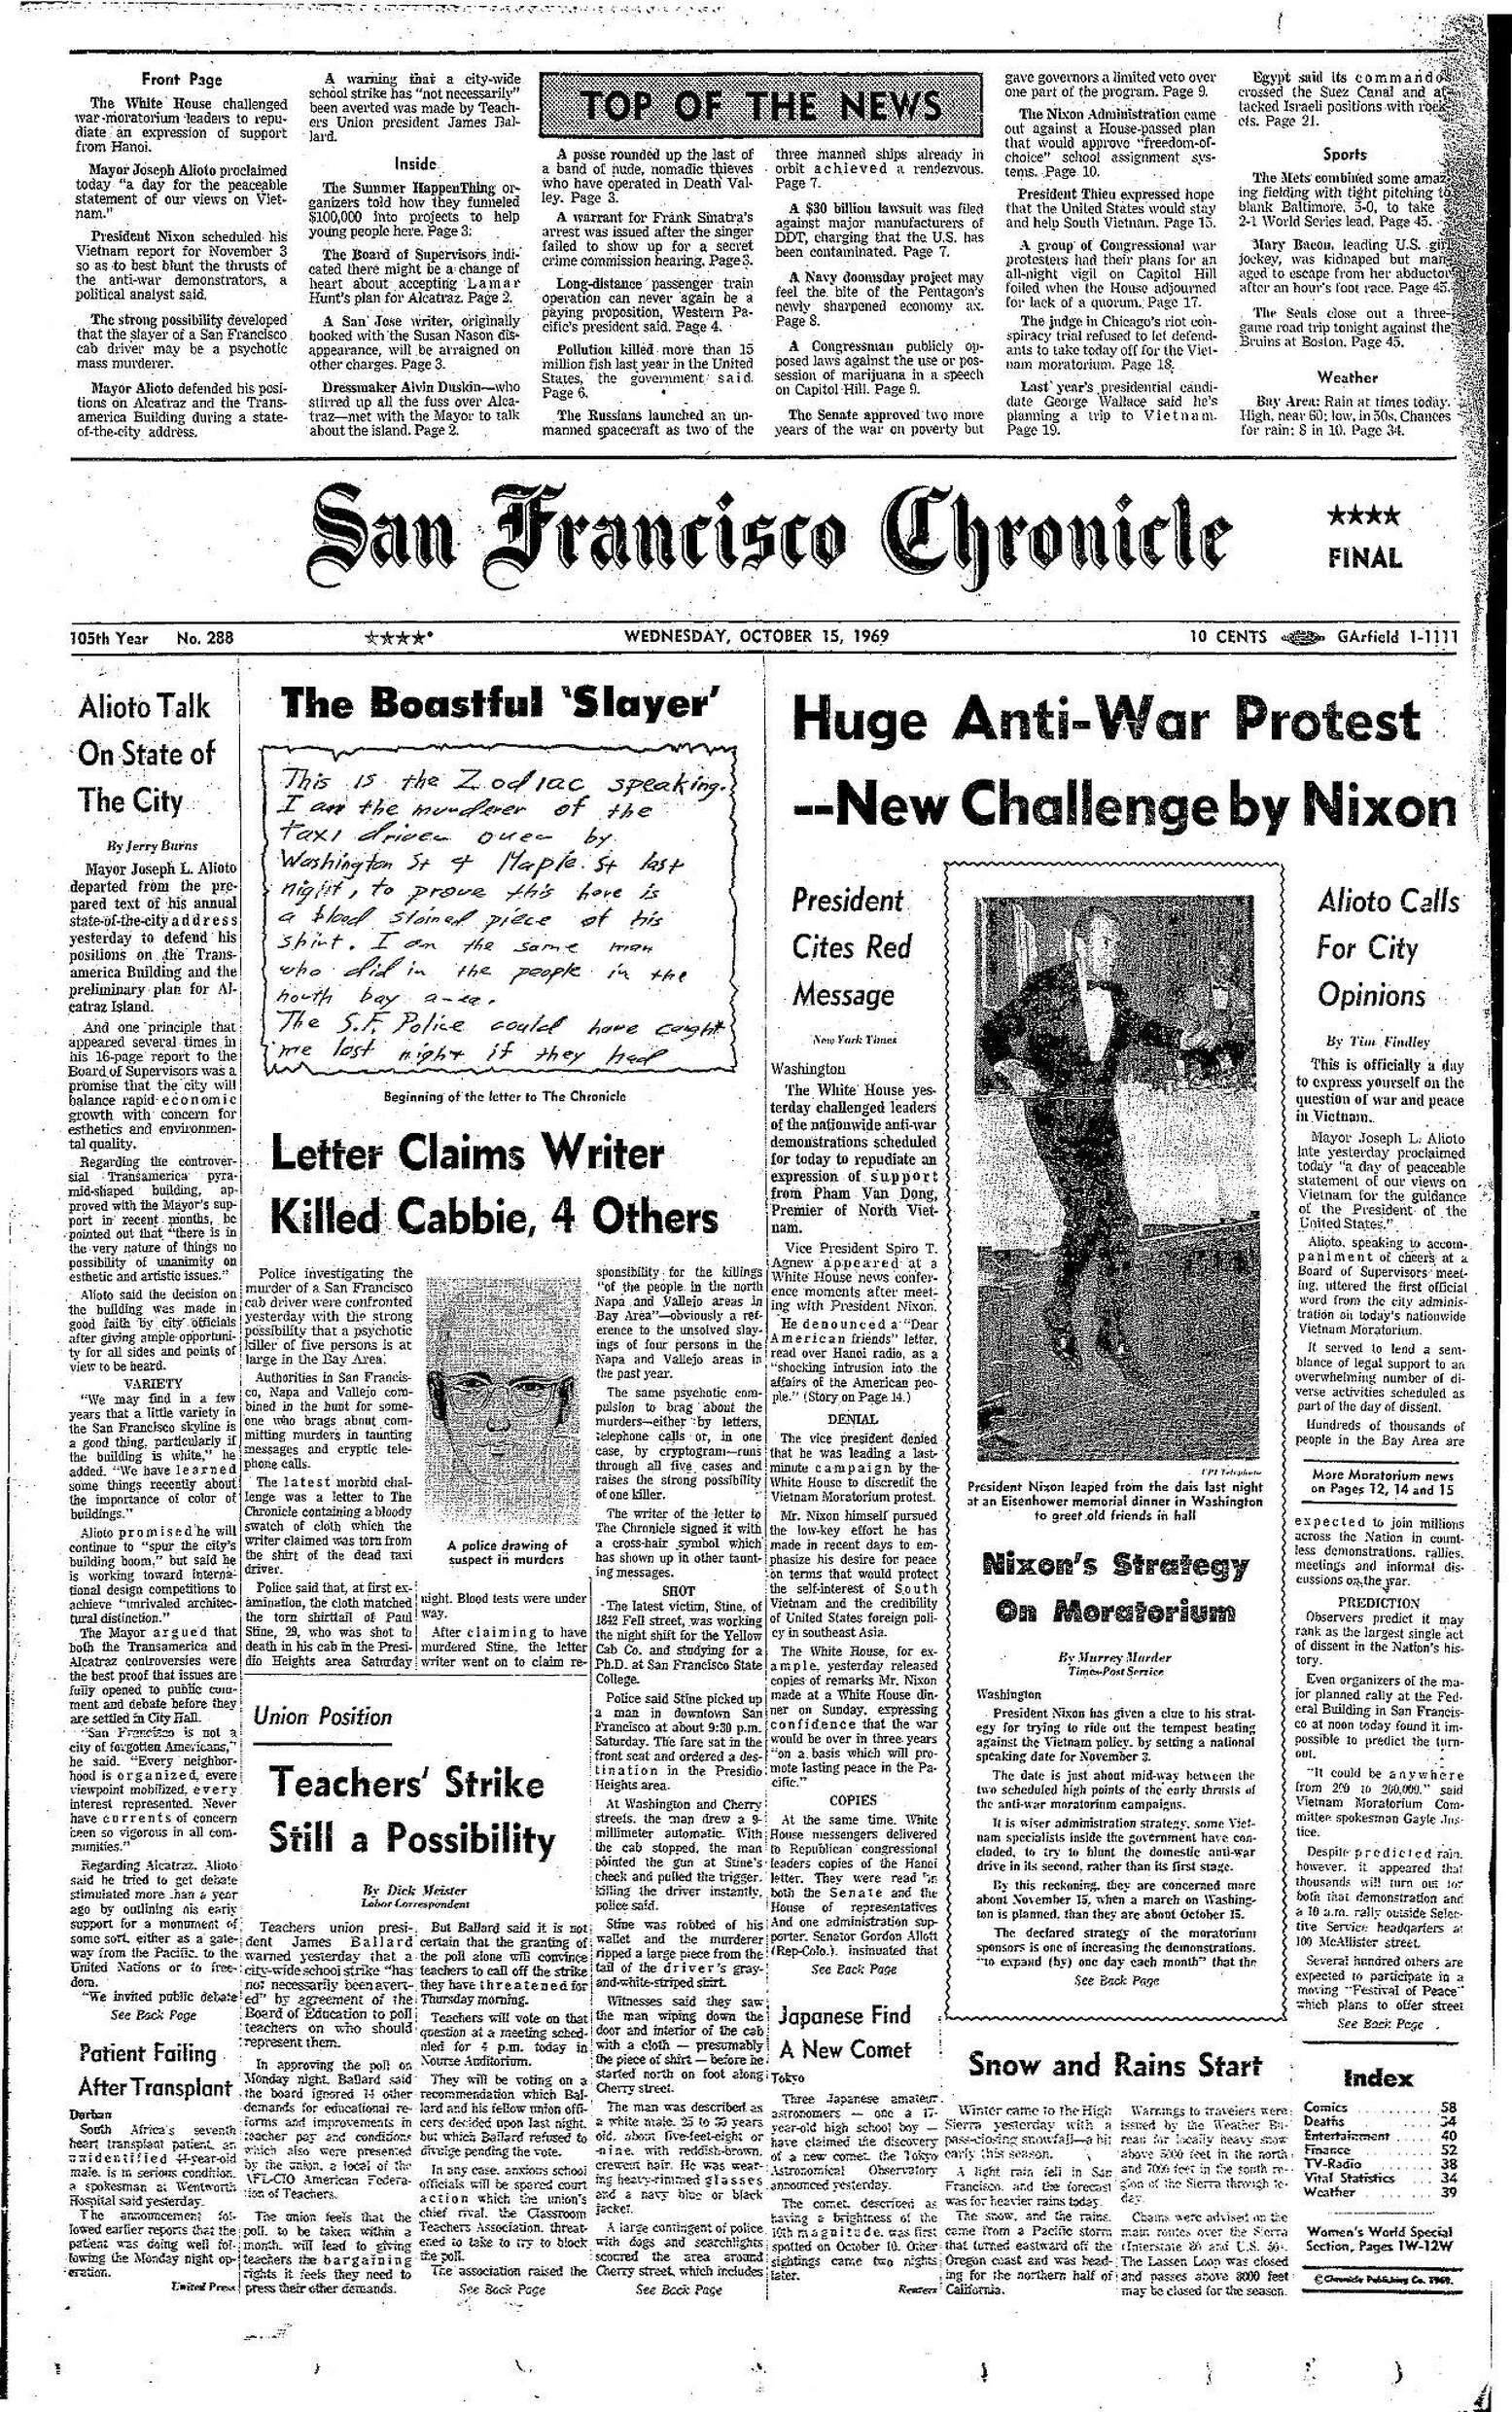 """""""Chronicle Covers: When the Zodiac killer wrote to the newsroom"""" 2480x2480"""